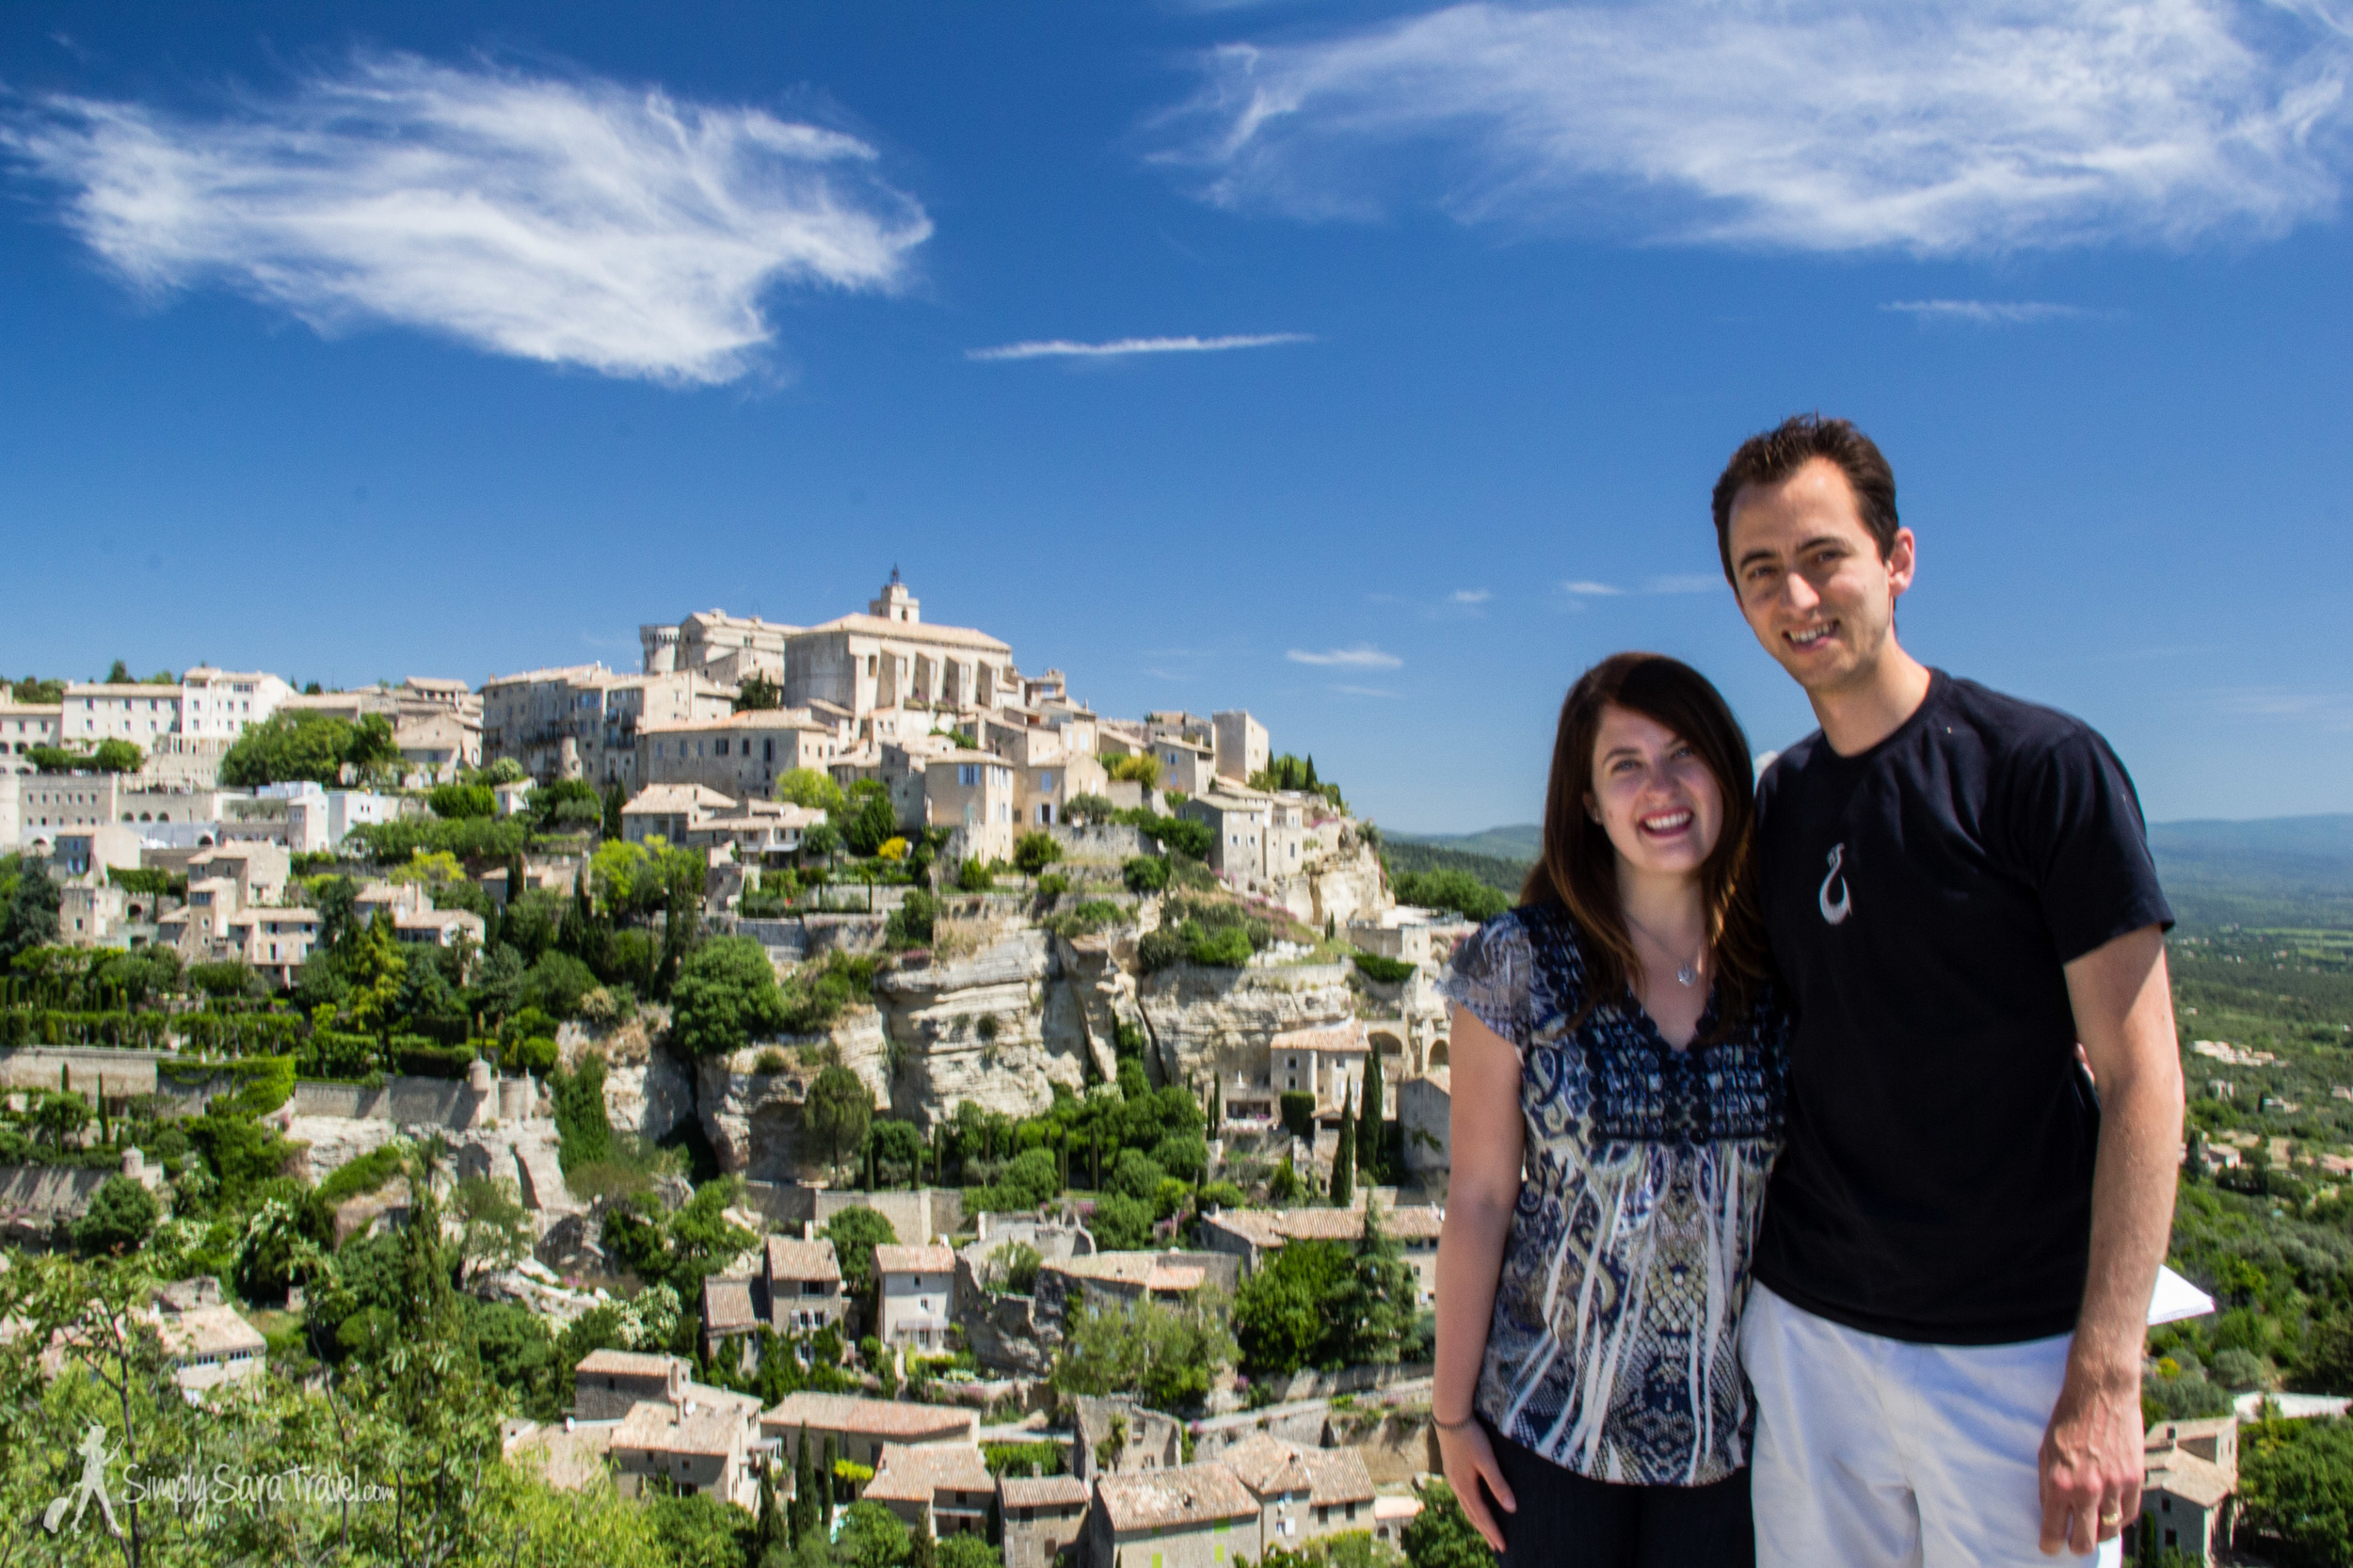 More to come on our month-long adventure through France! Here we are, celebrating our 12 year dating anniversary in the adorable town of Gordes, France - a place I never dreamed we would be together 12 years prior!